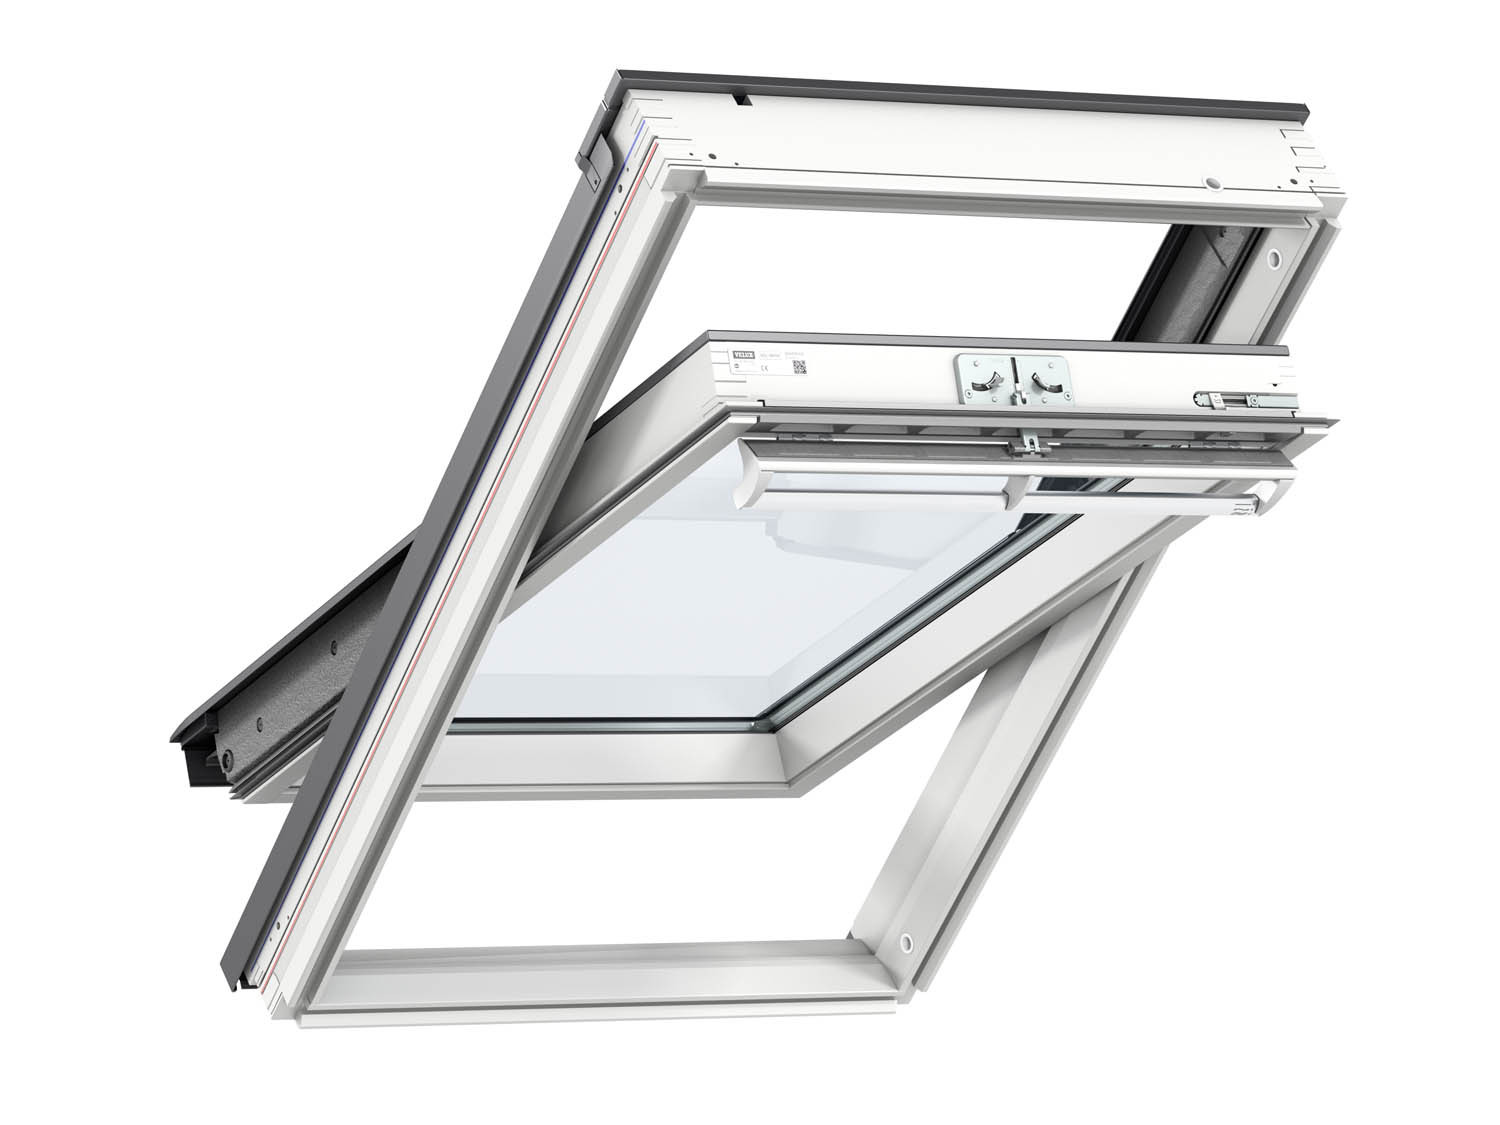 Velux 780mm x 980mm White Roof Window GGU0070 MK04